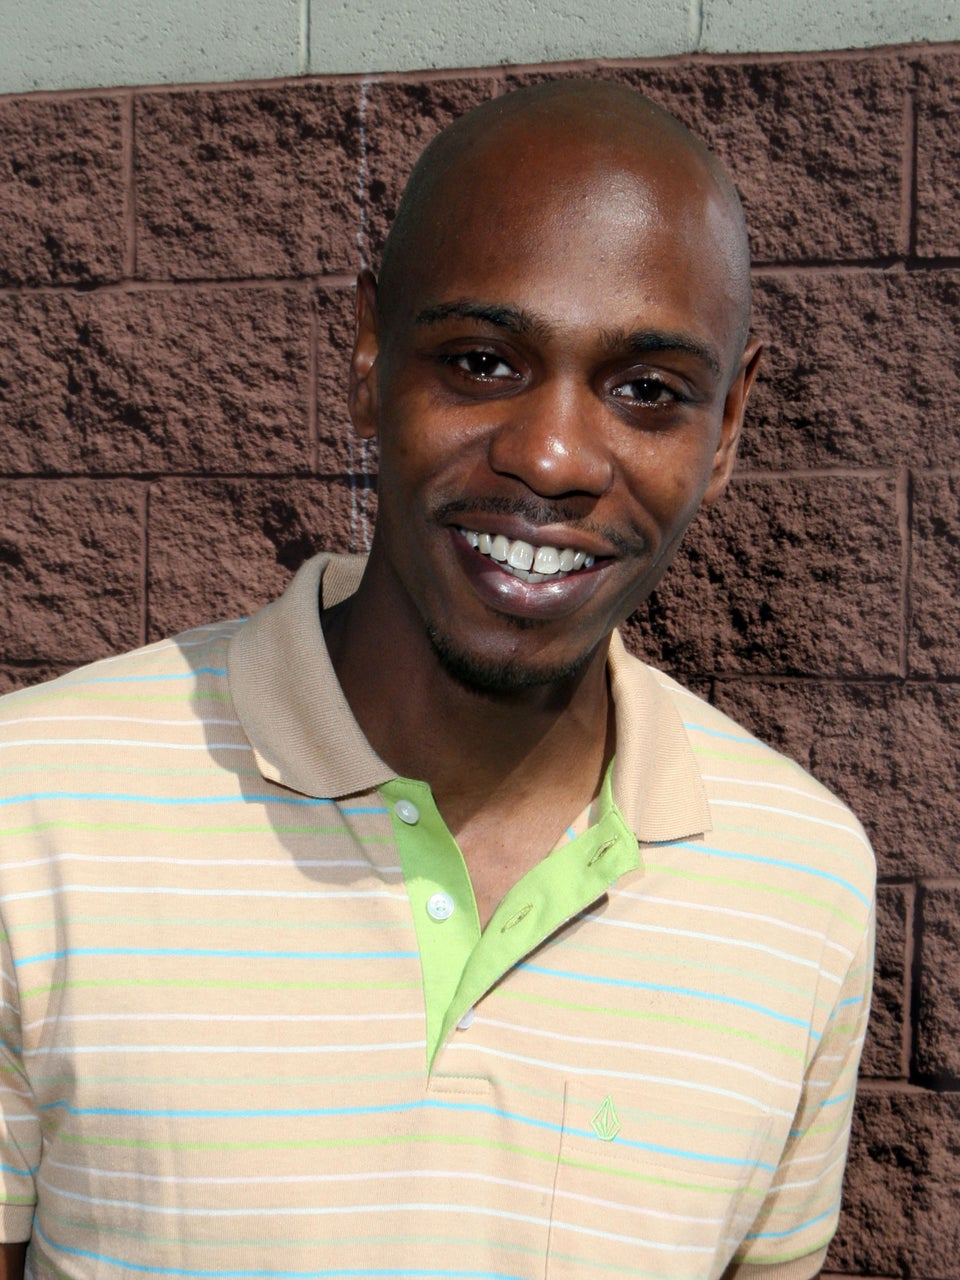 Are Dave Chappelle and Chris Rock Doing a Comedy Tour?